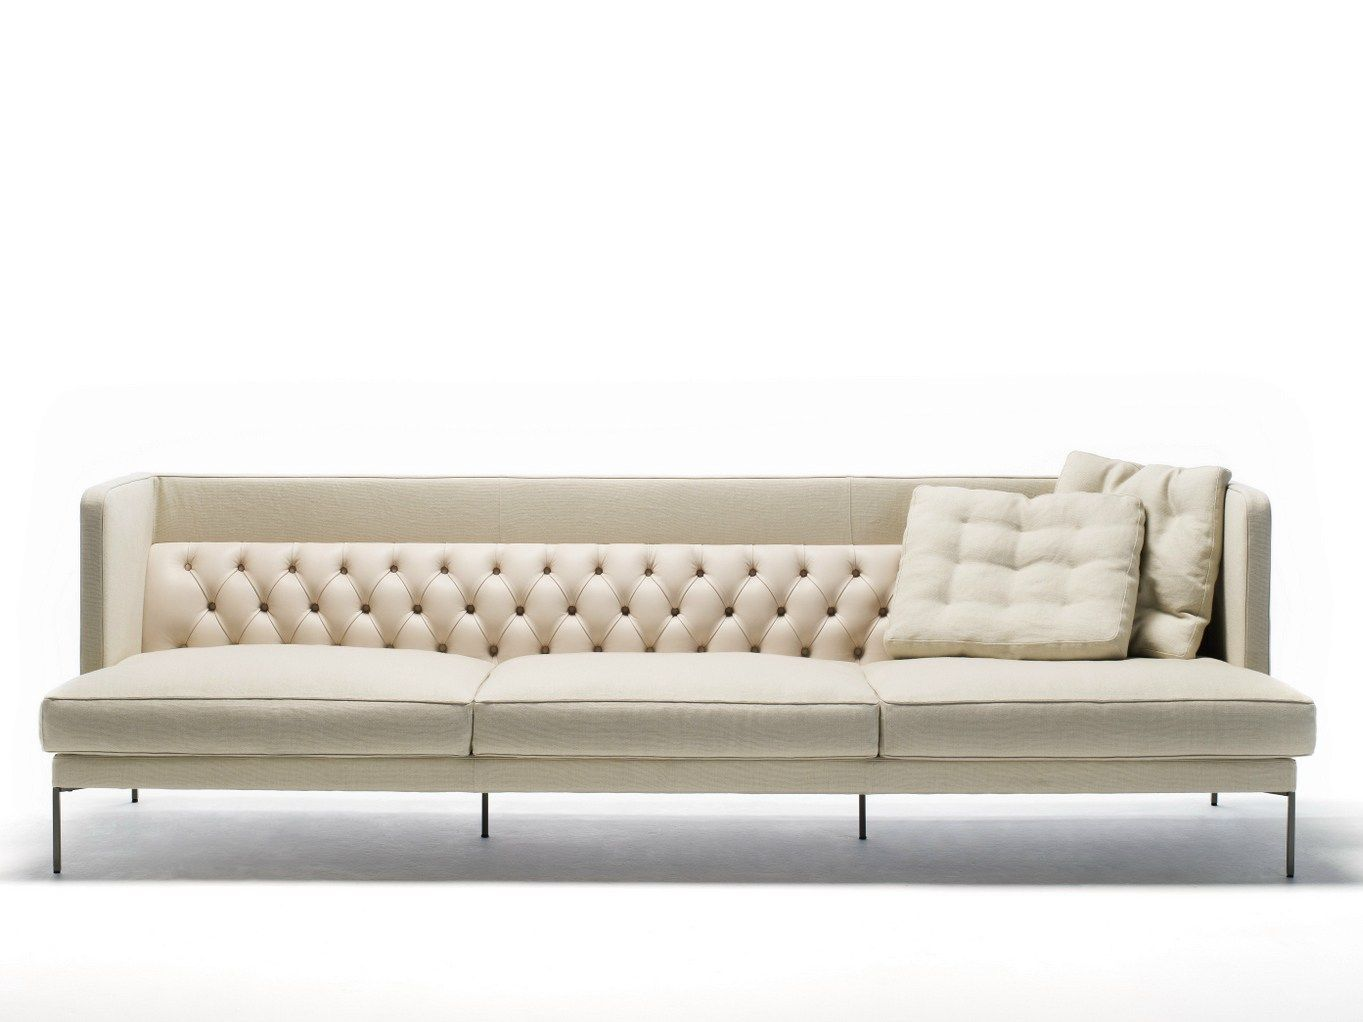 Tufted Sofa Lipp Collection By Living Divani